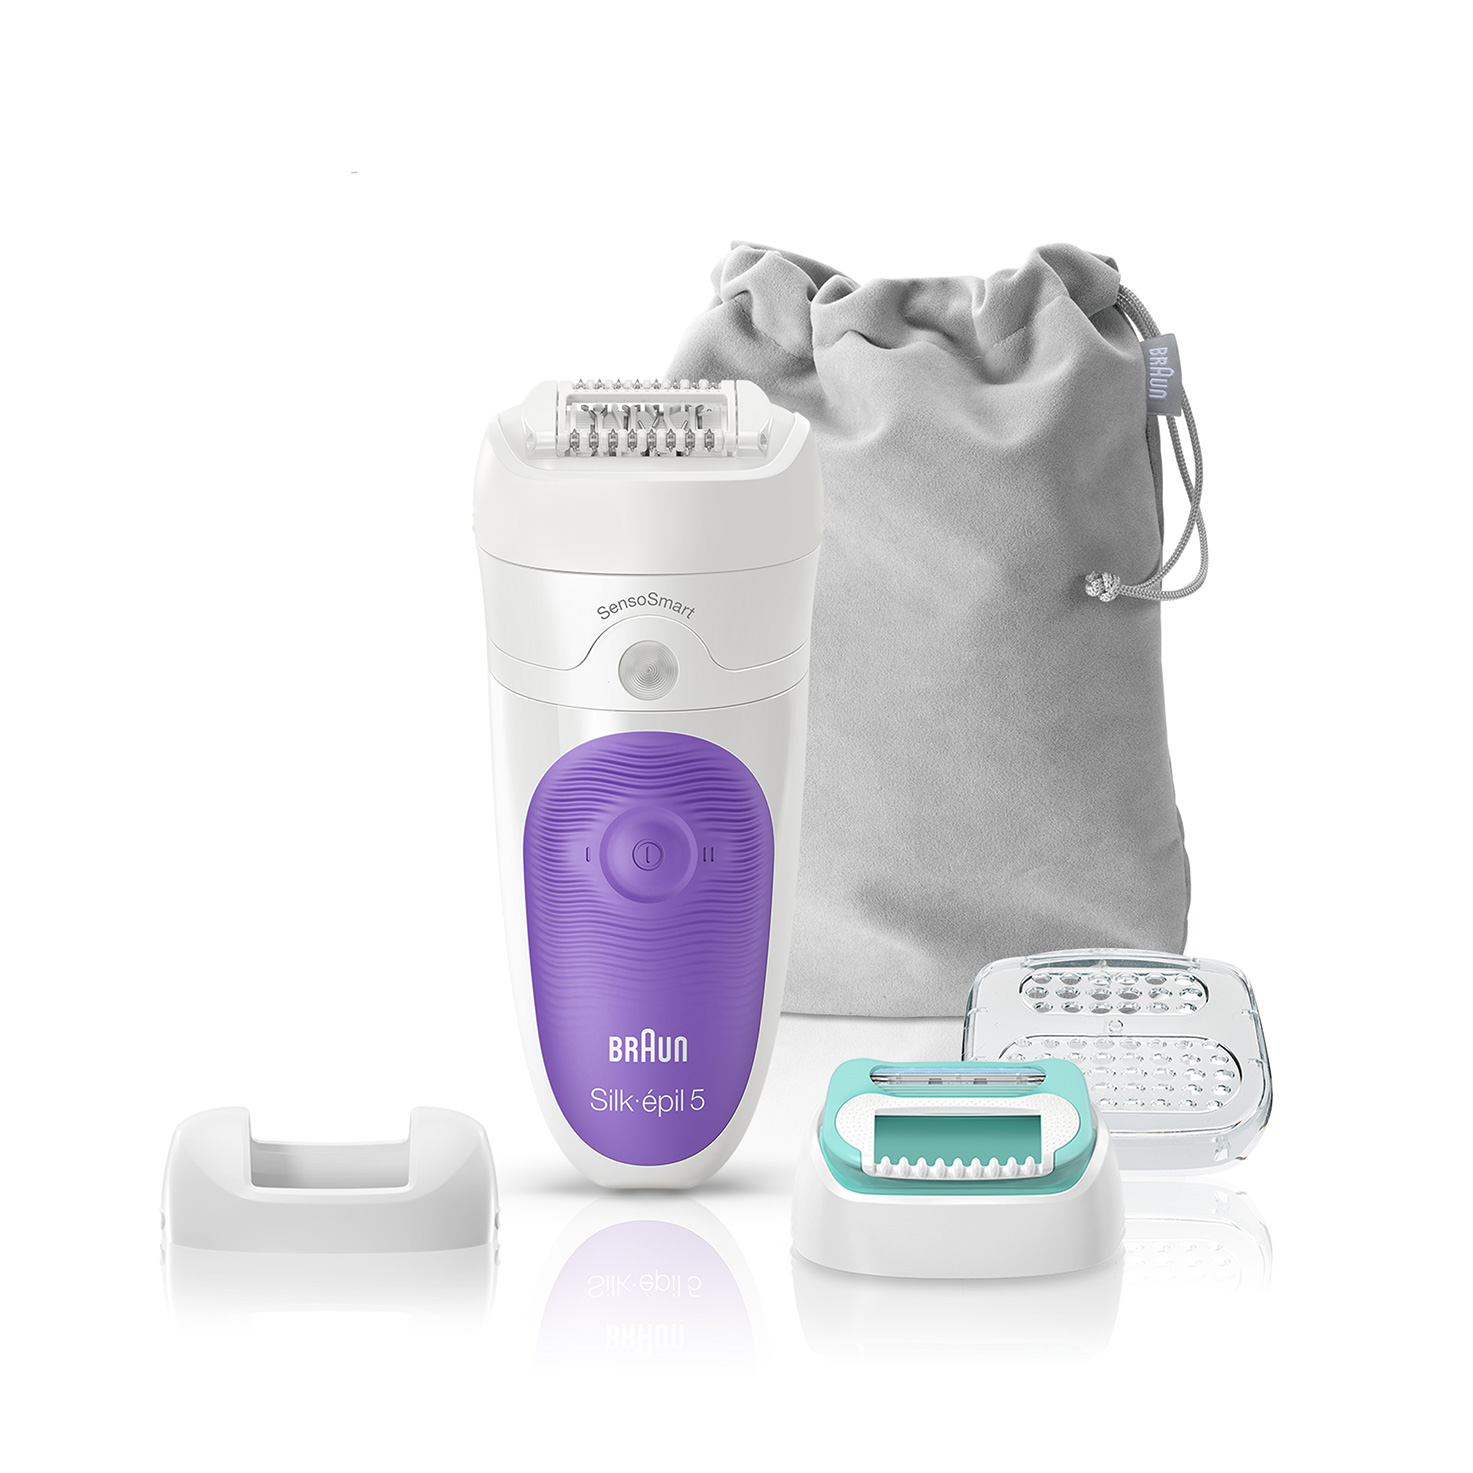 Silk-épil 5 5/880 SensoSmart™ epilator attachments